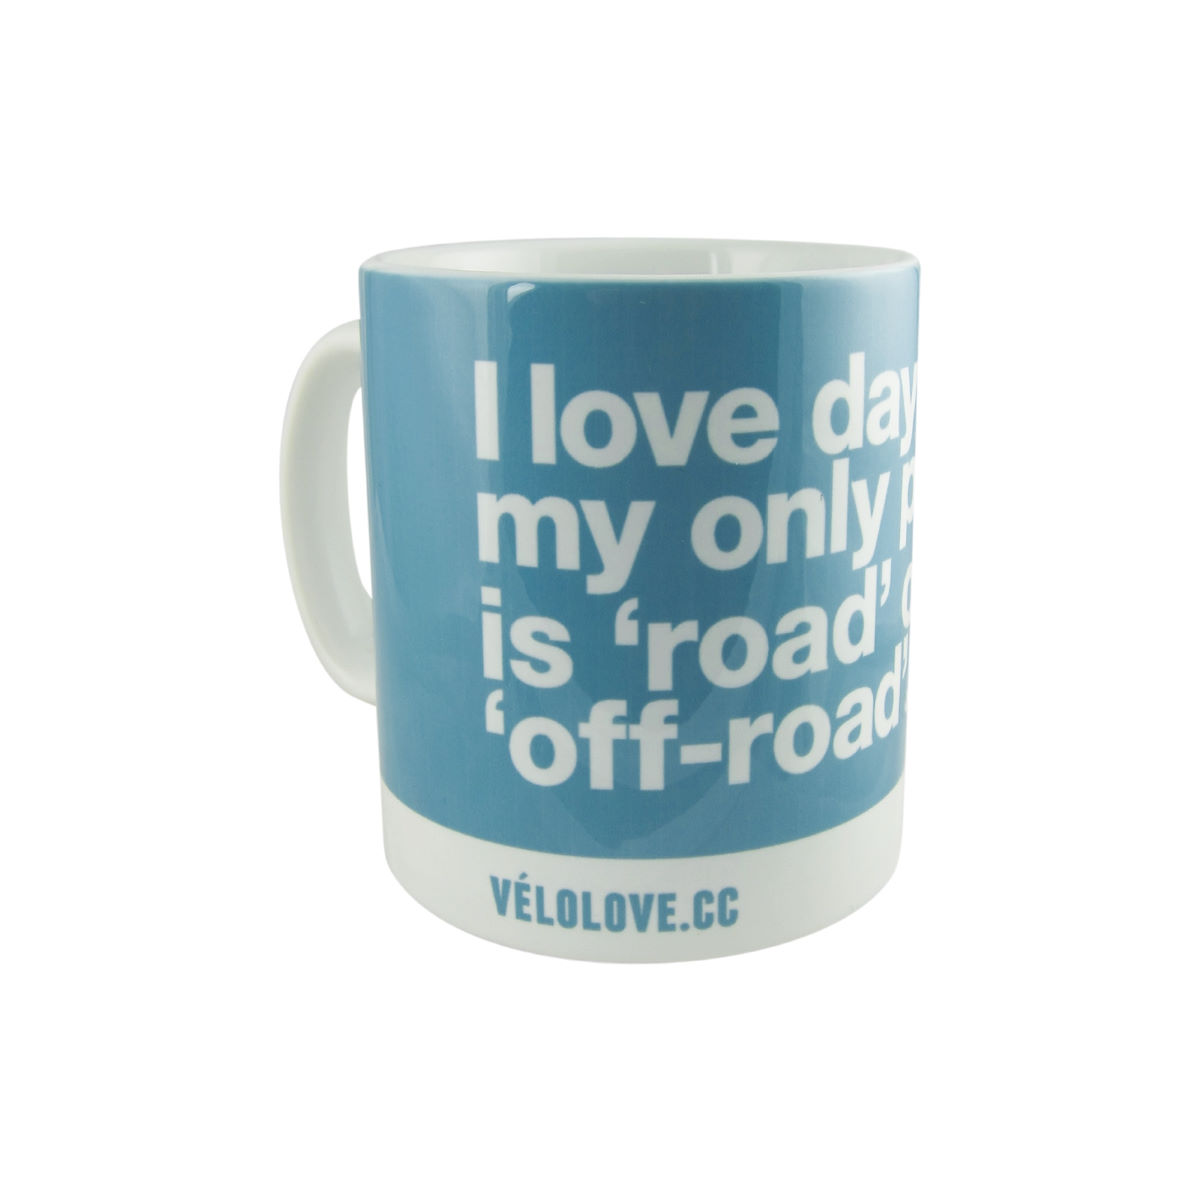 Image of Tasse Velolove I love days when my only problem is 'road' or 'off